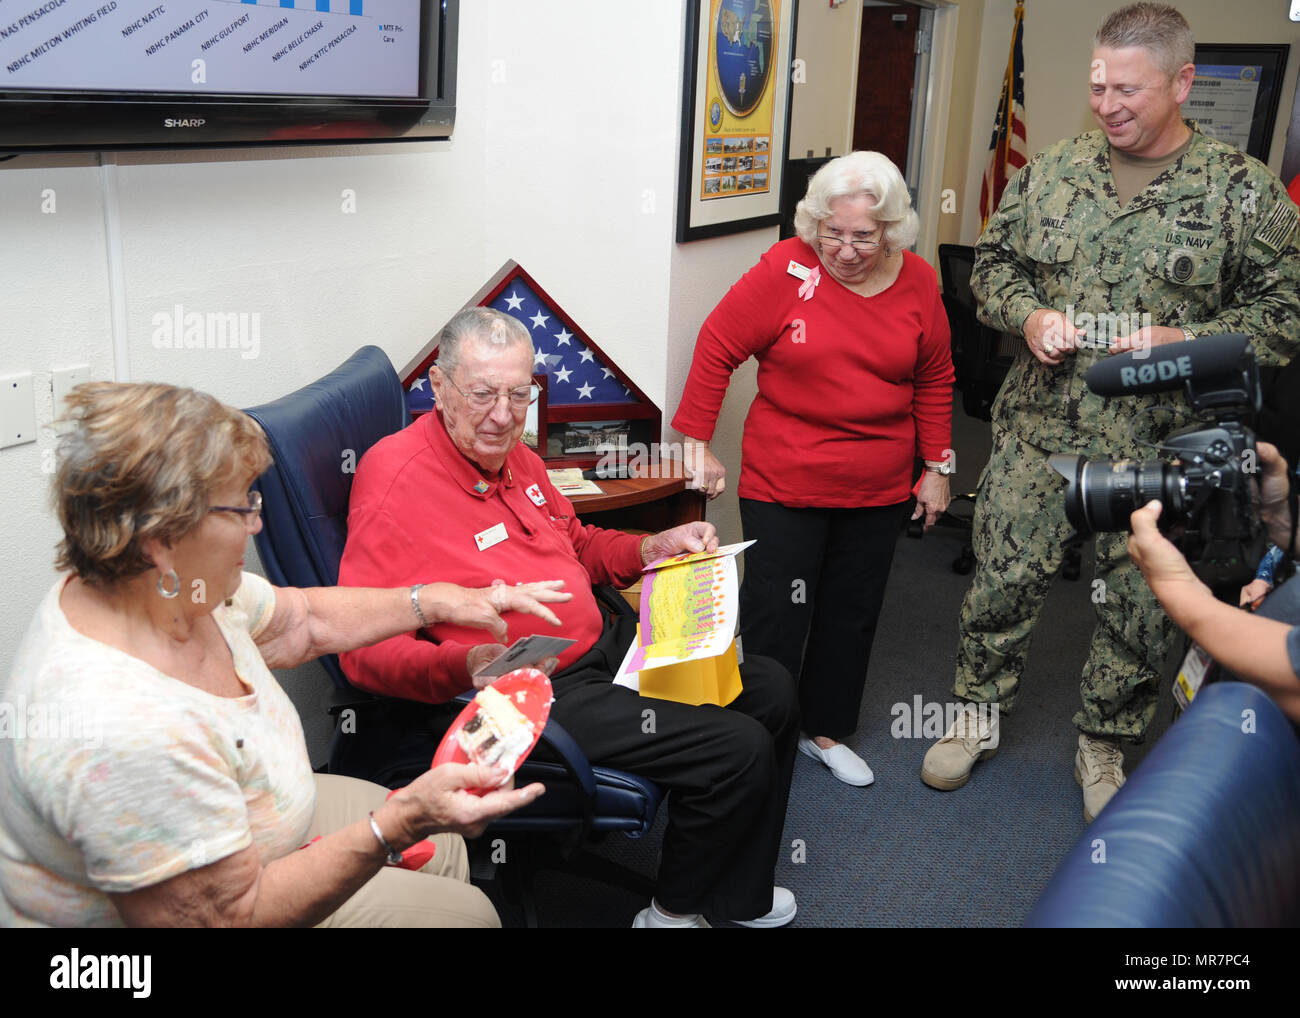 Francis Frank Emond A Red Cross Volunteer At Naval Hospital Pensacola Opens Birthday Cards During Party For Him May 23